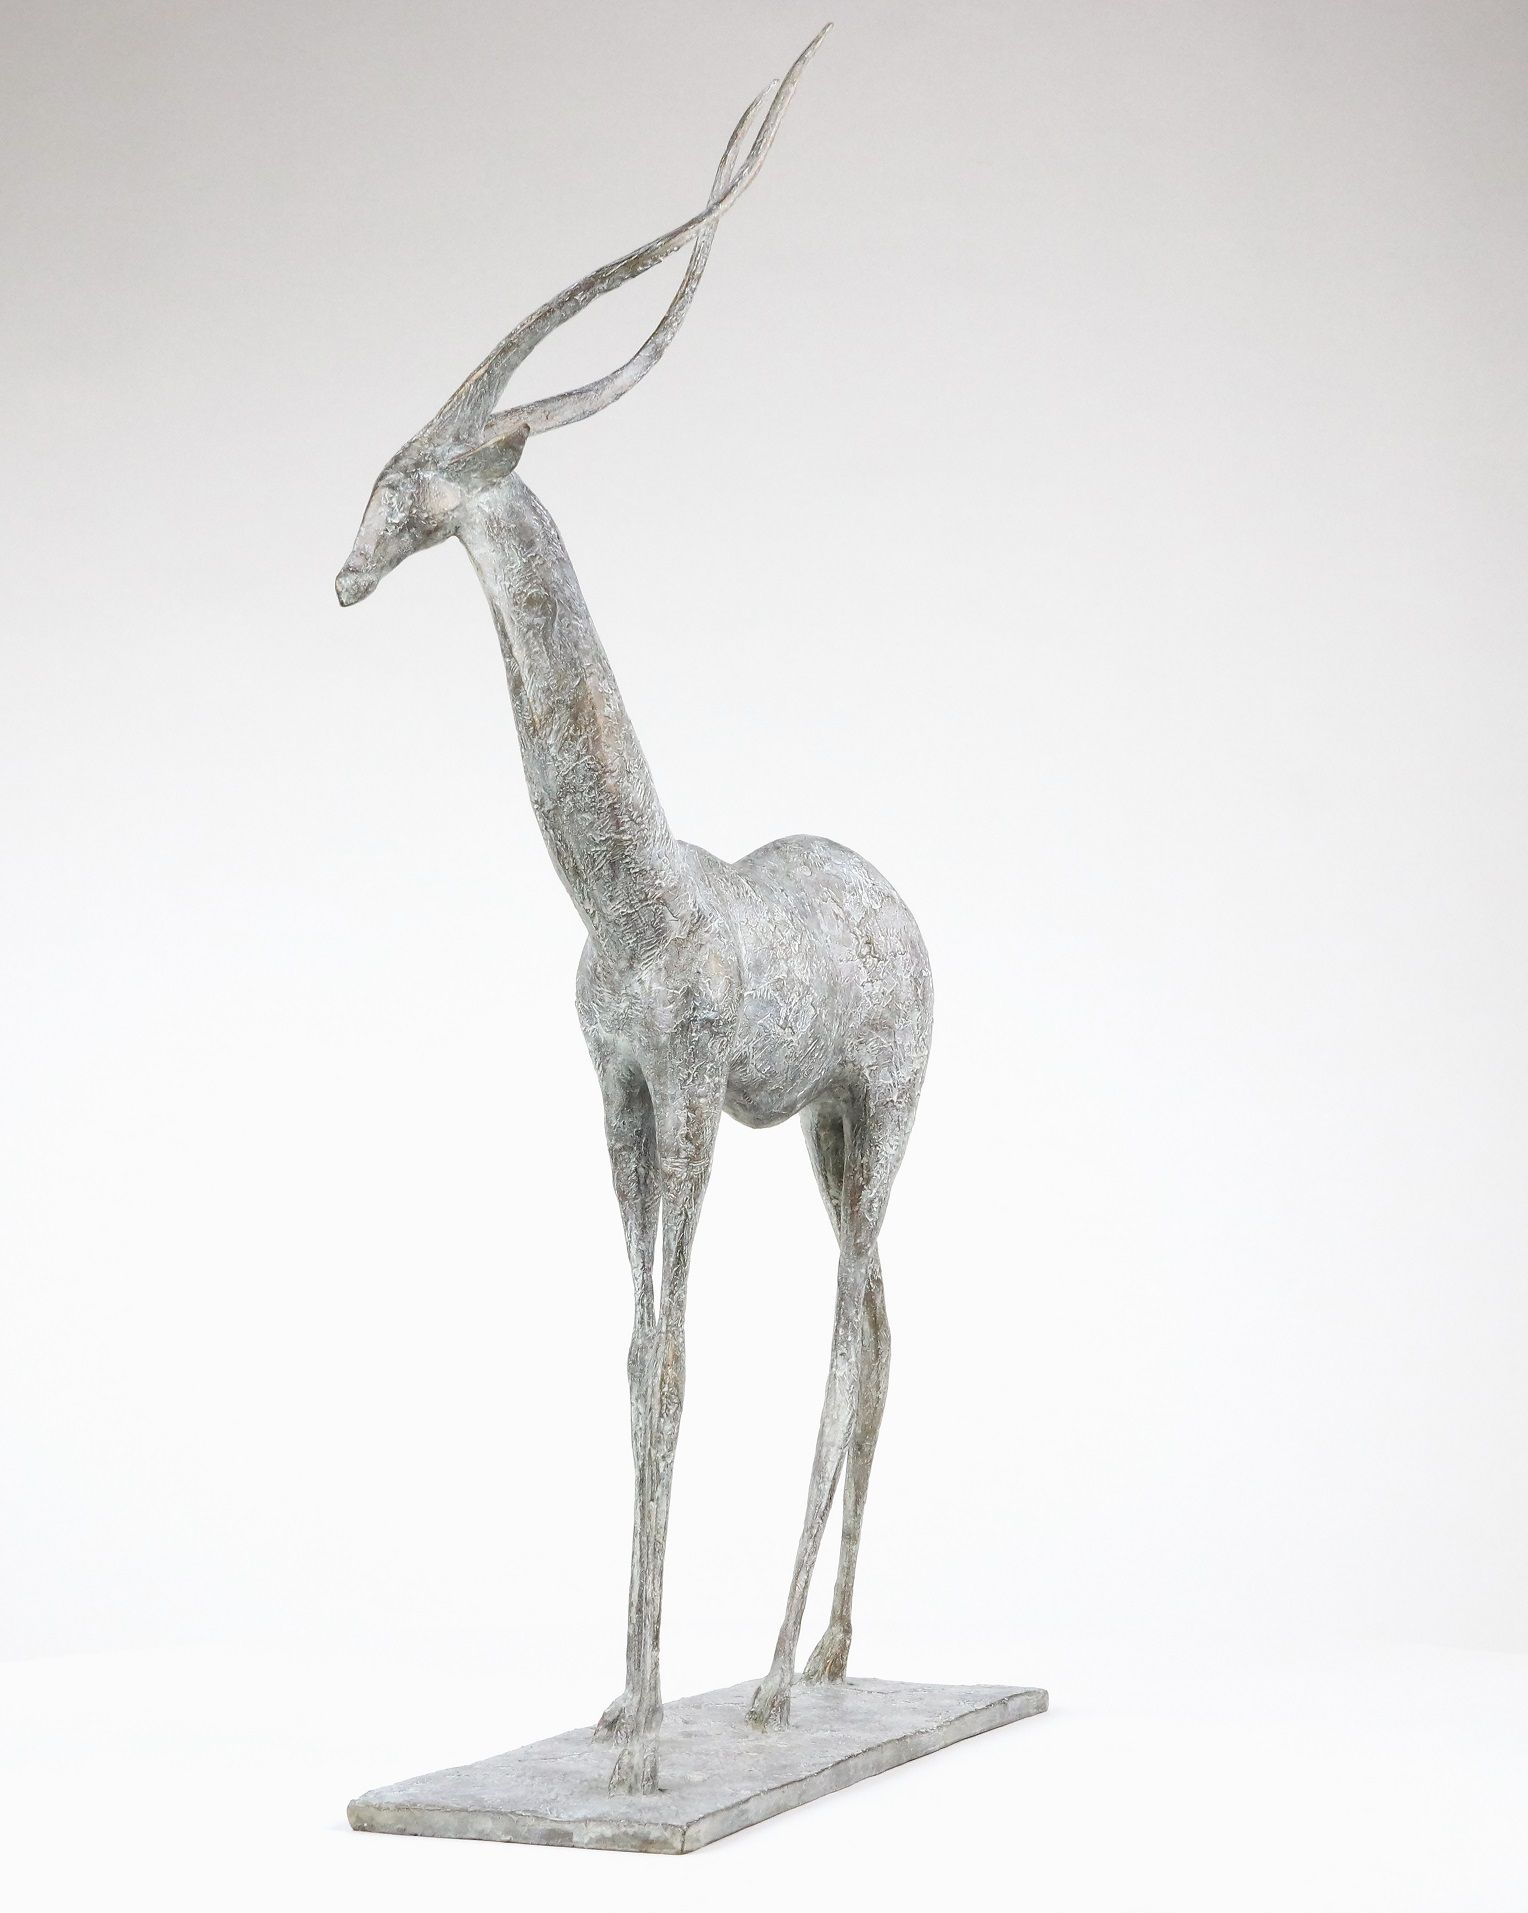 Gazelle I,Pierre Yermia,Sculpture contemporaine, detail 4